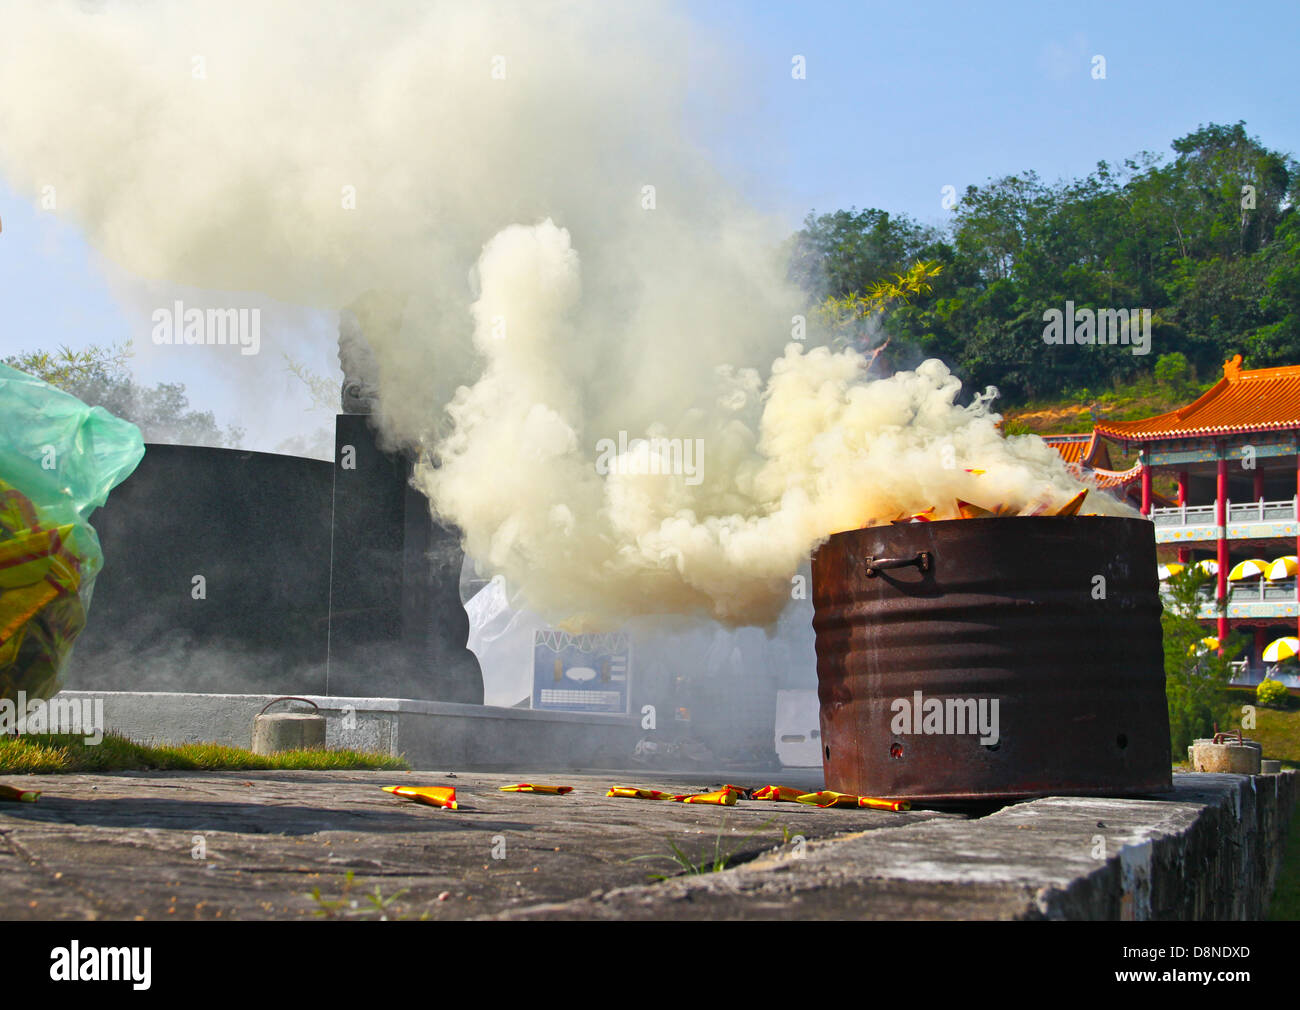 High concentration of poisonous smoke from incomplete burning of offerings. Environmental pollution from religion - Stock Image